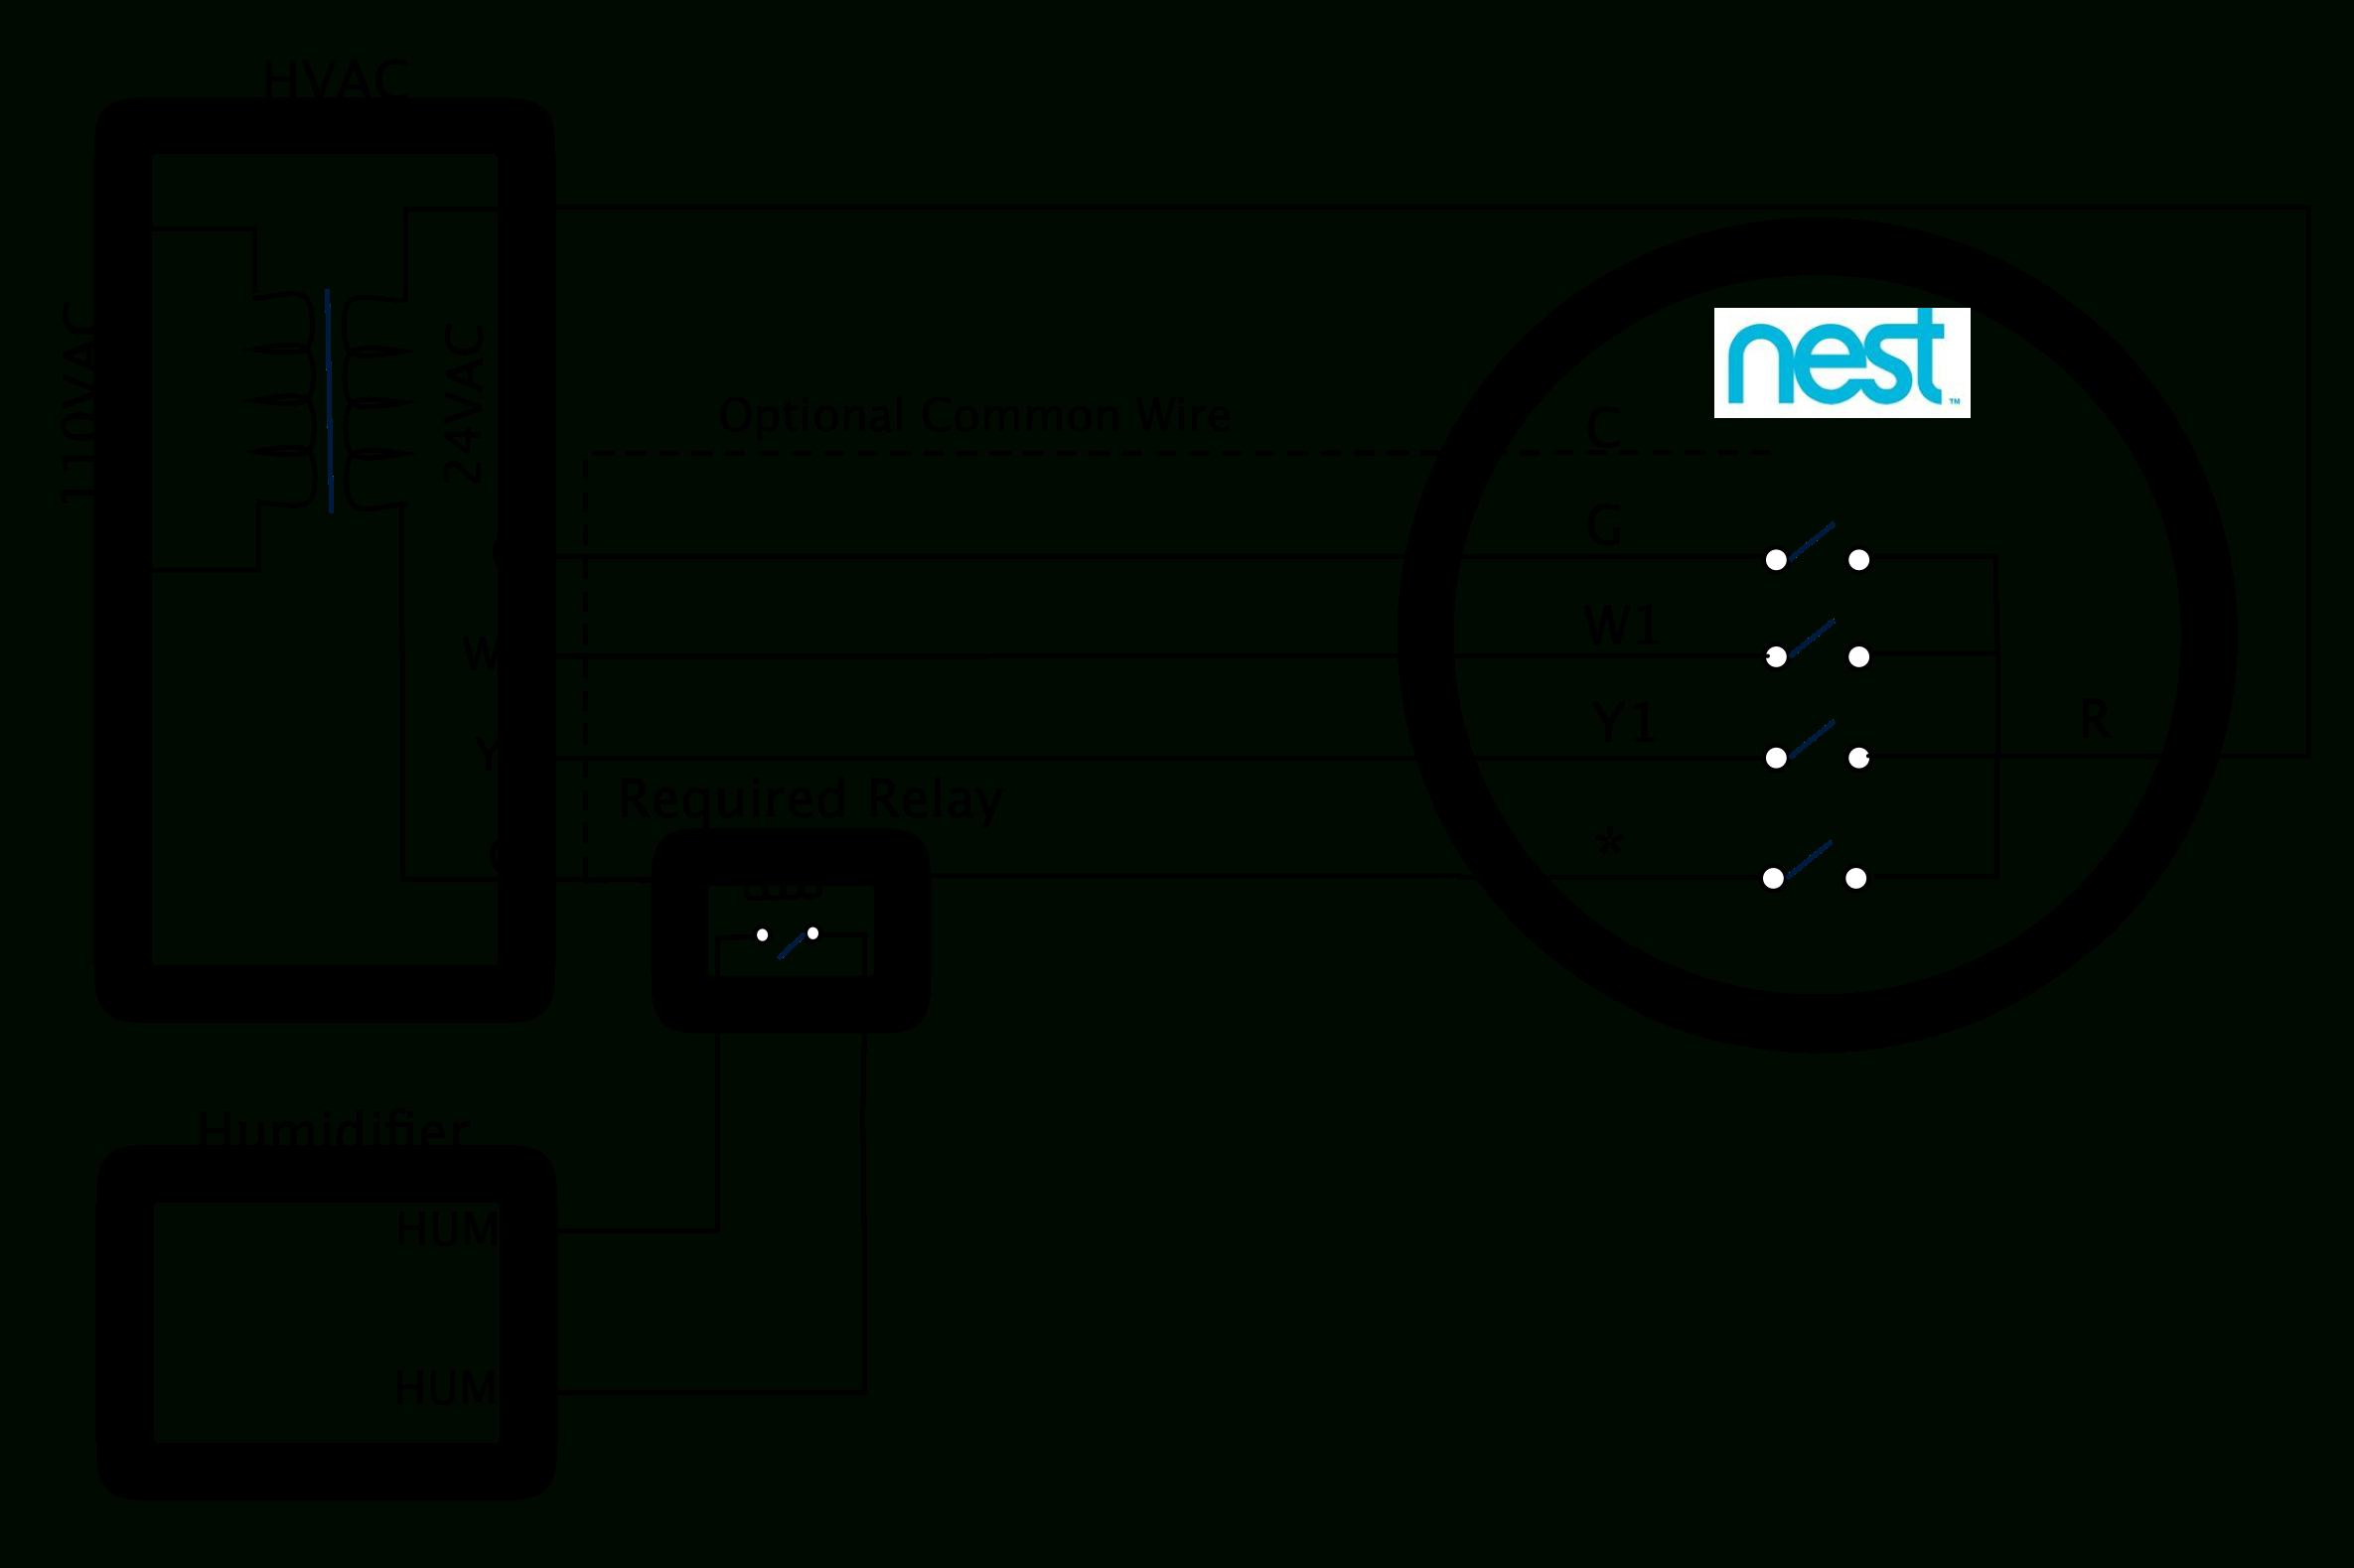 Wiring Diagram For Nest Thermostat With Humidifier - Wiring Diagrams - Aprilaire 700 Wiring Diagram Nest